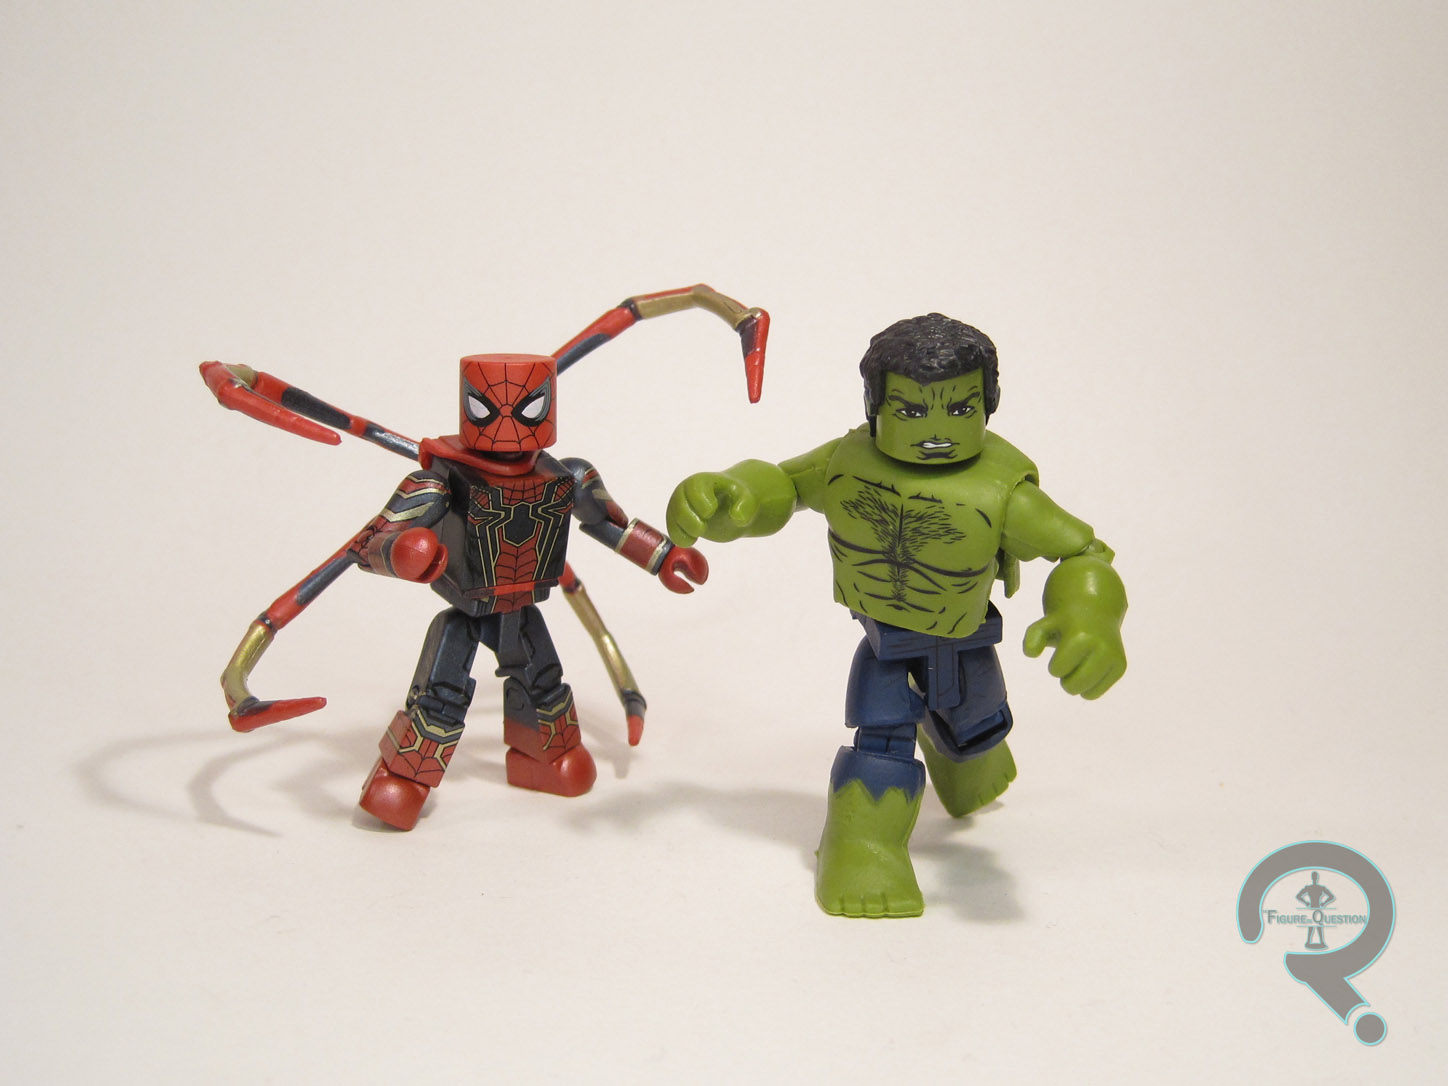 Marvel Minimates Toys R Us Avengers Infinity War Iron Spider-man And Hulk